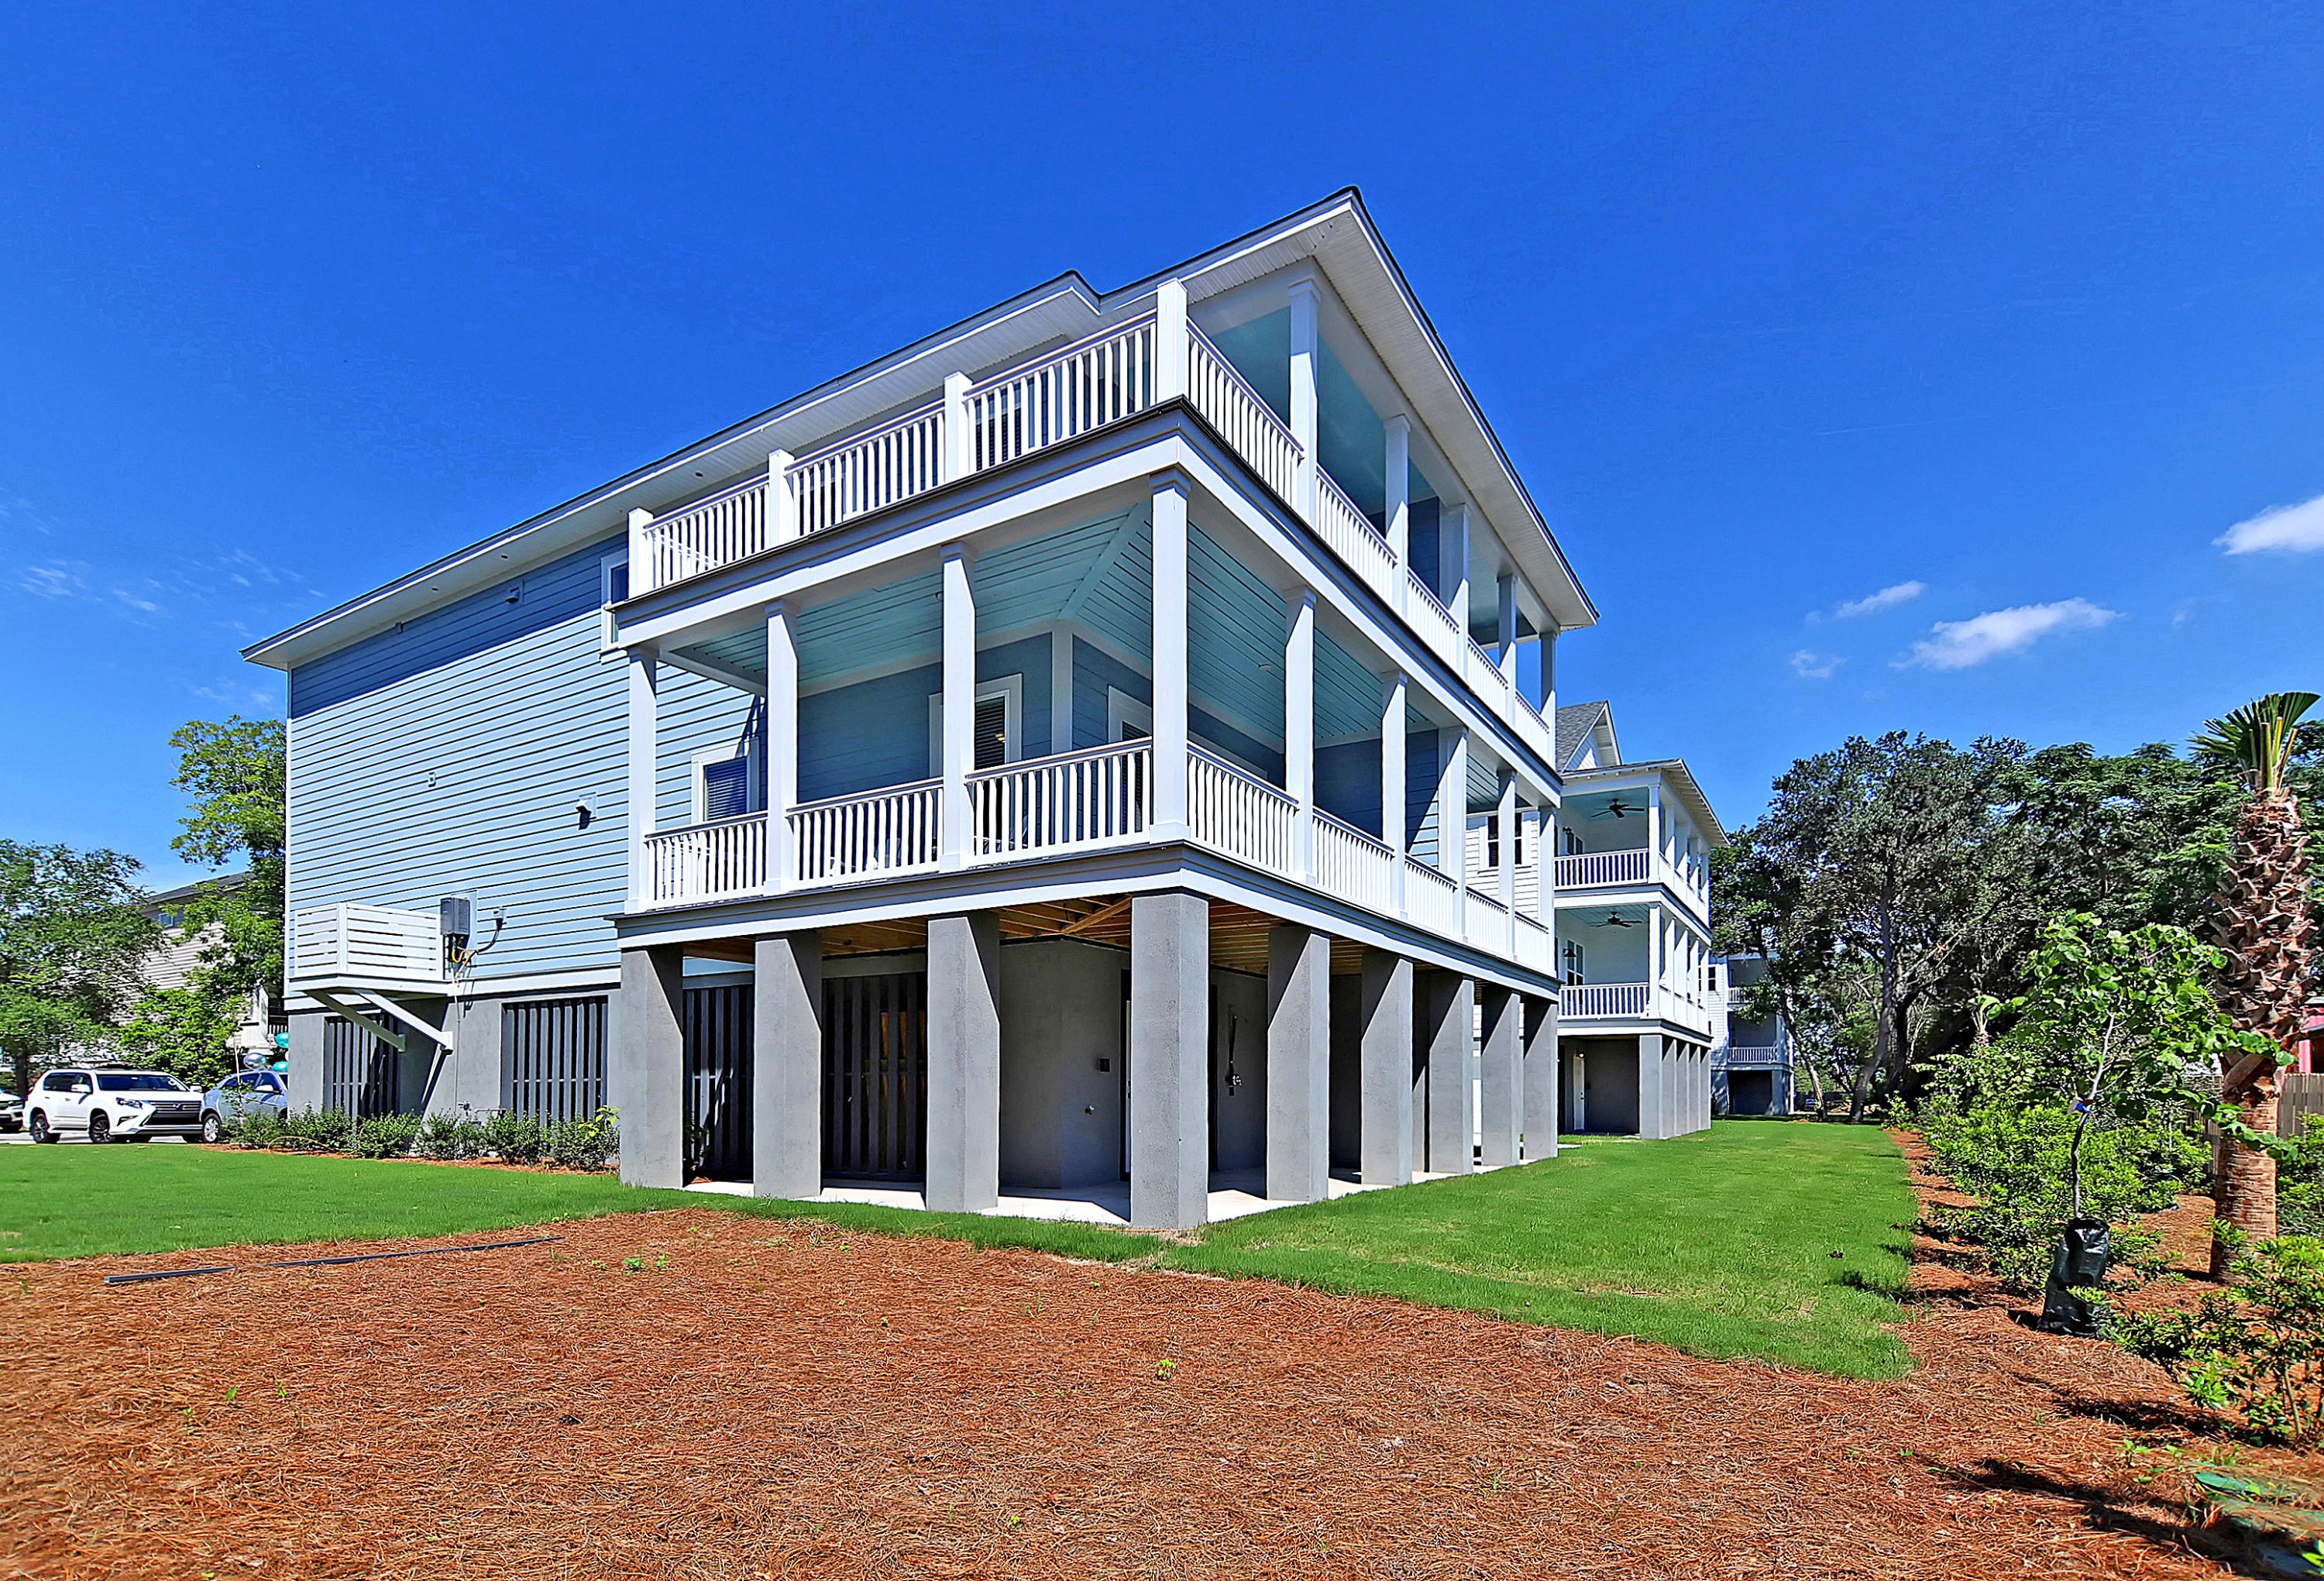 Sable On The Marsh Homes For Sale - 124 Howard Mary, Charleston, SC - 8